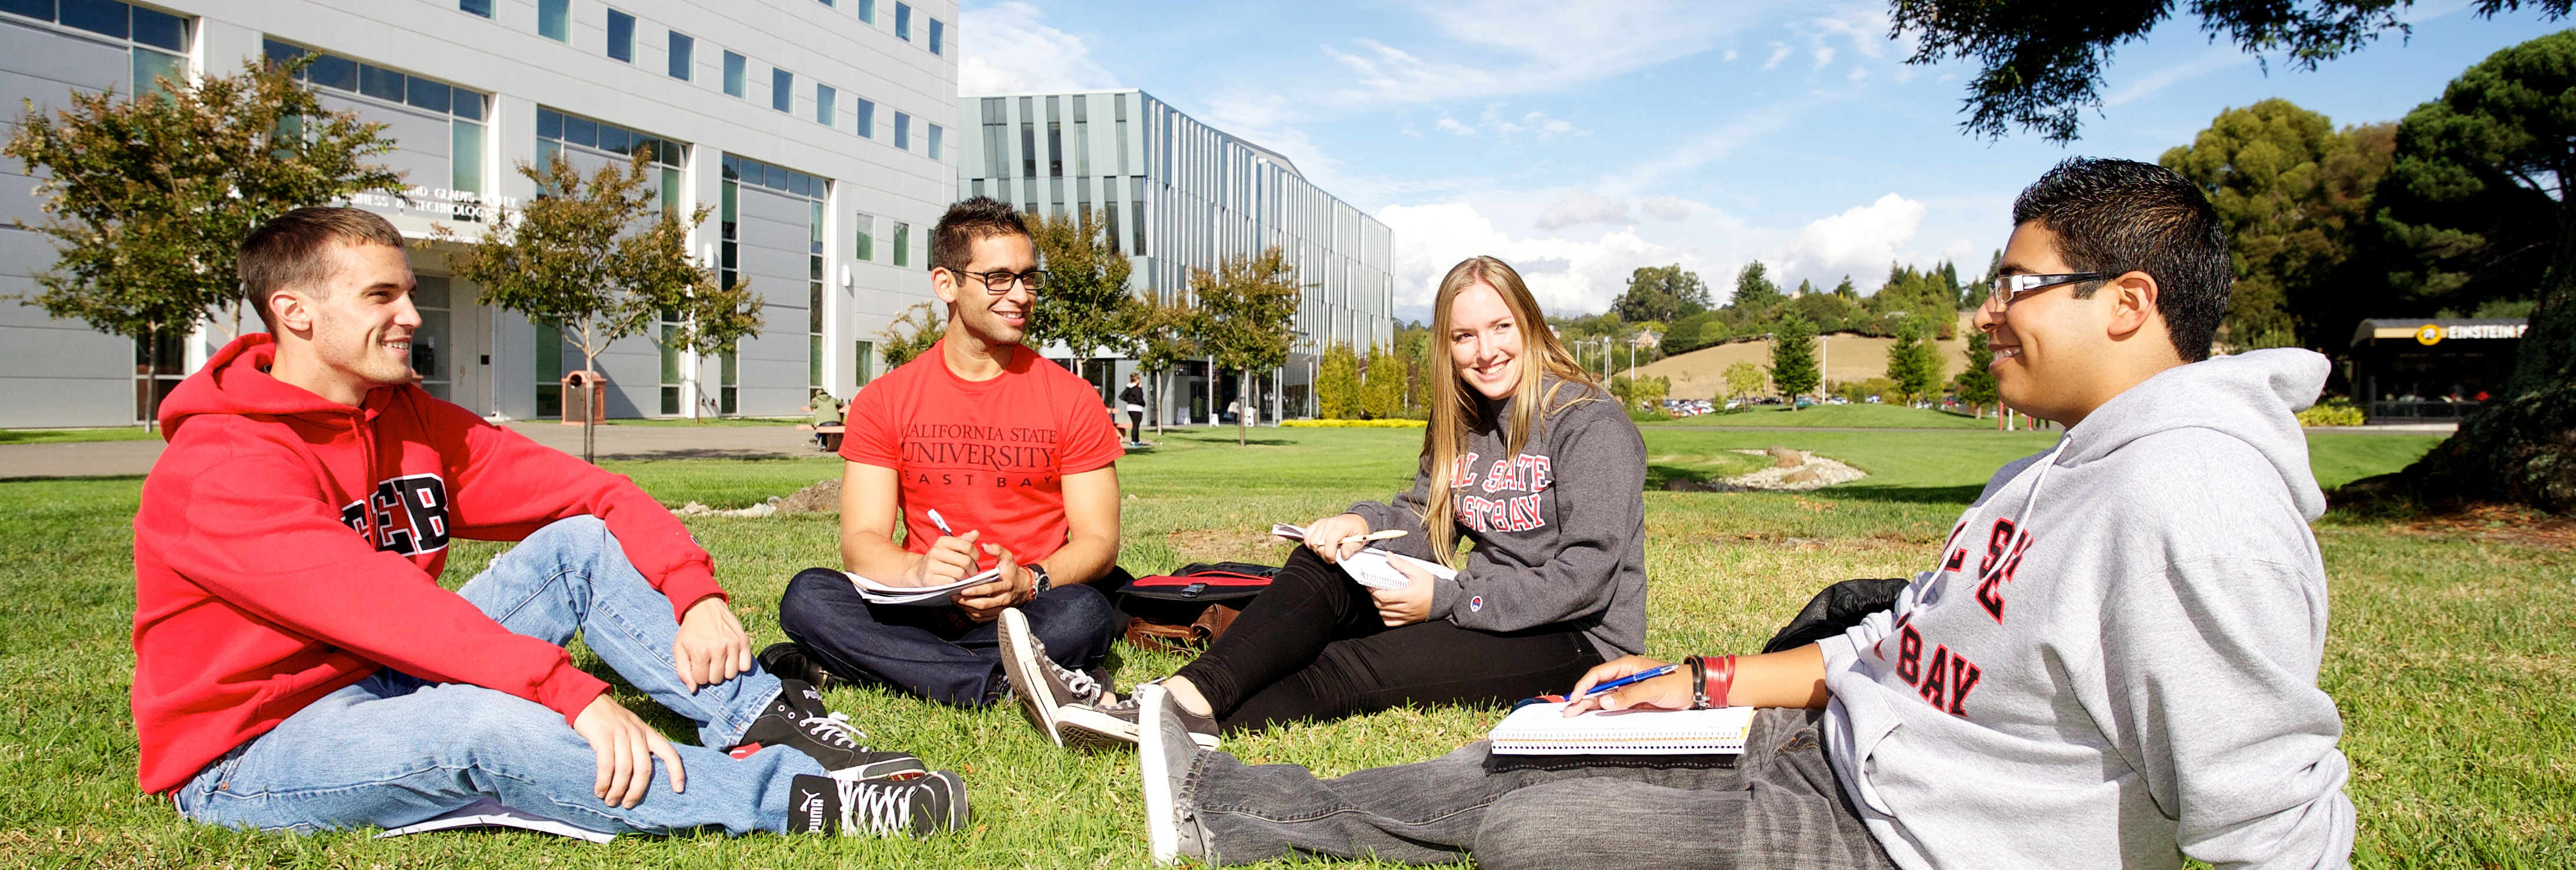 Students talking on lawn in front of Valley Business Technology Center